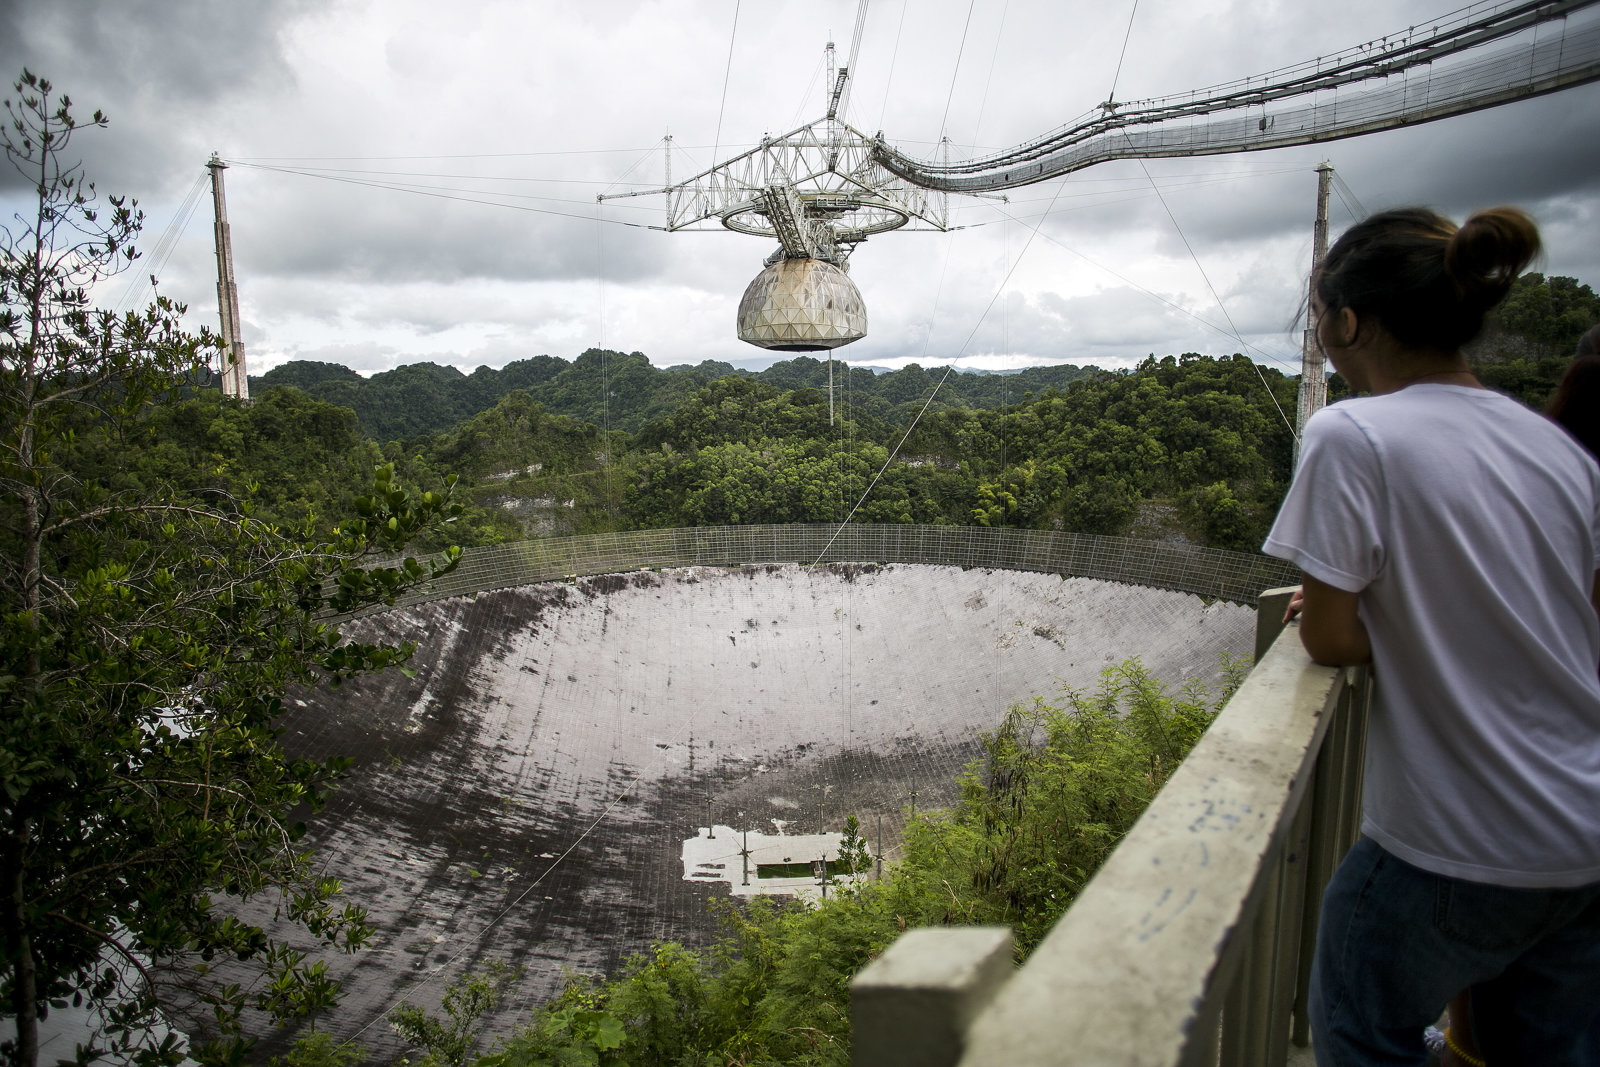 A visitor views the world's largest single dish radio telescope at the Arecibo Observatory in Arecibo, Puerto Rico, on Friday, Aug. 25, 2017. Over the years,Puerto Ricohas wooed visitors and investors with beaches, sun, tax breaks and splashy public works. Now the Caribbean island wants to add an outpost of Chinese culture, complete with graceful pavilions and regional cuisine. Photographer: Xavier Garcia/Bloomberg via Getty Images